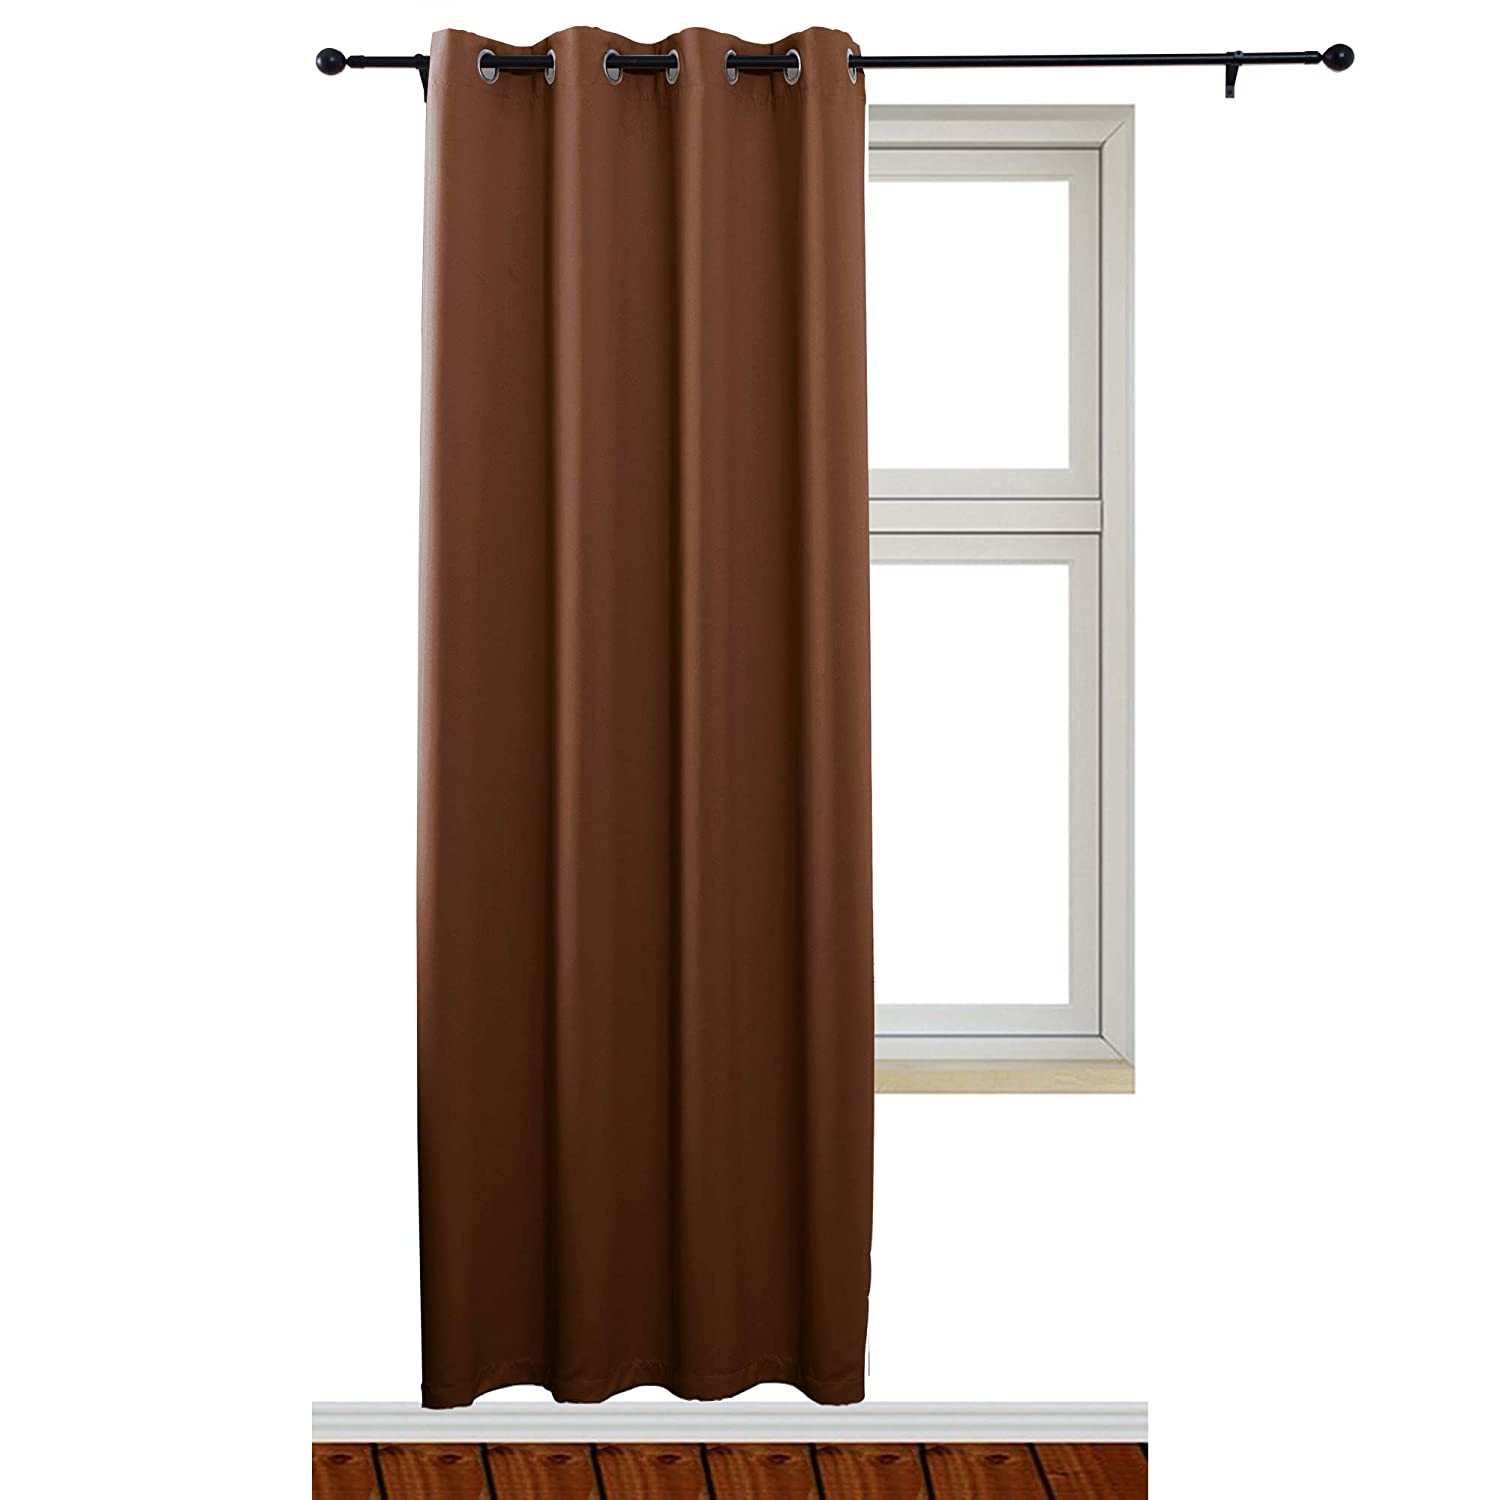 Sinogem Room Darkening Window Curtain Panel Blackout Curtains Bedroom Kitchen, 1 Panel (52x63 inches, Beige) SG99080-99109